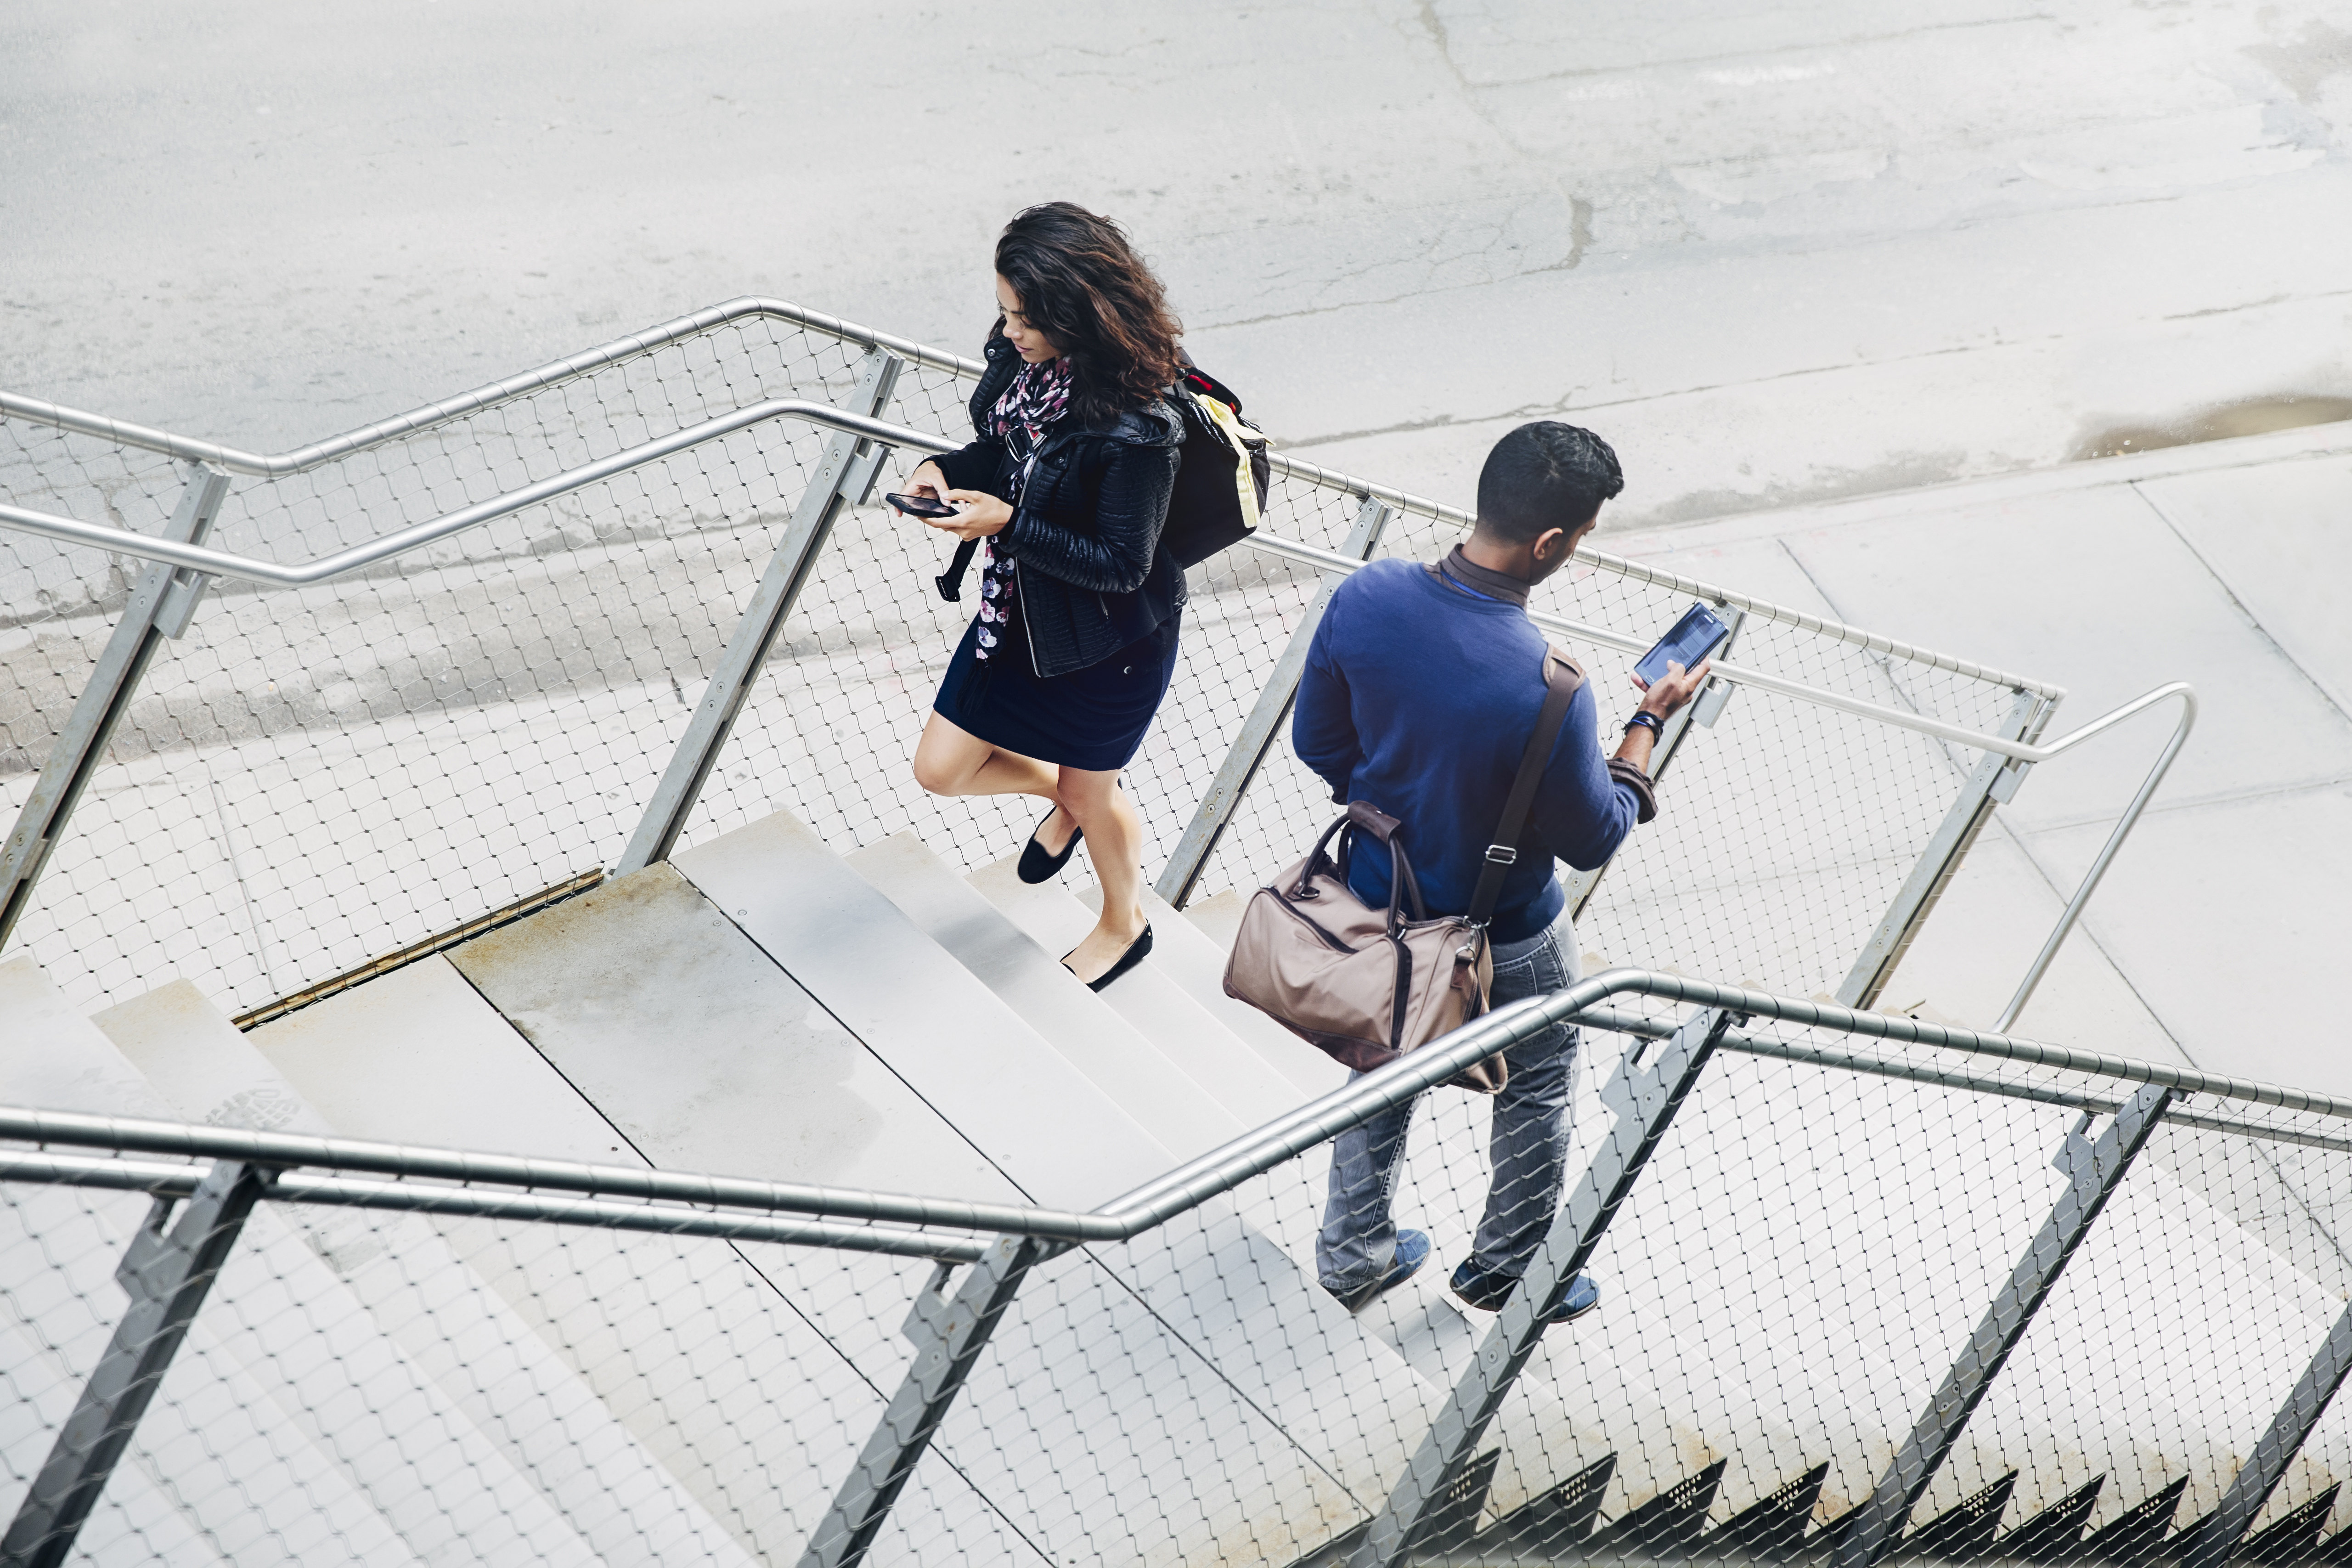 People using cell phones on city steps